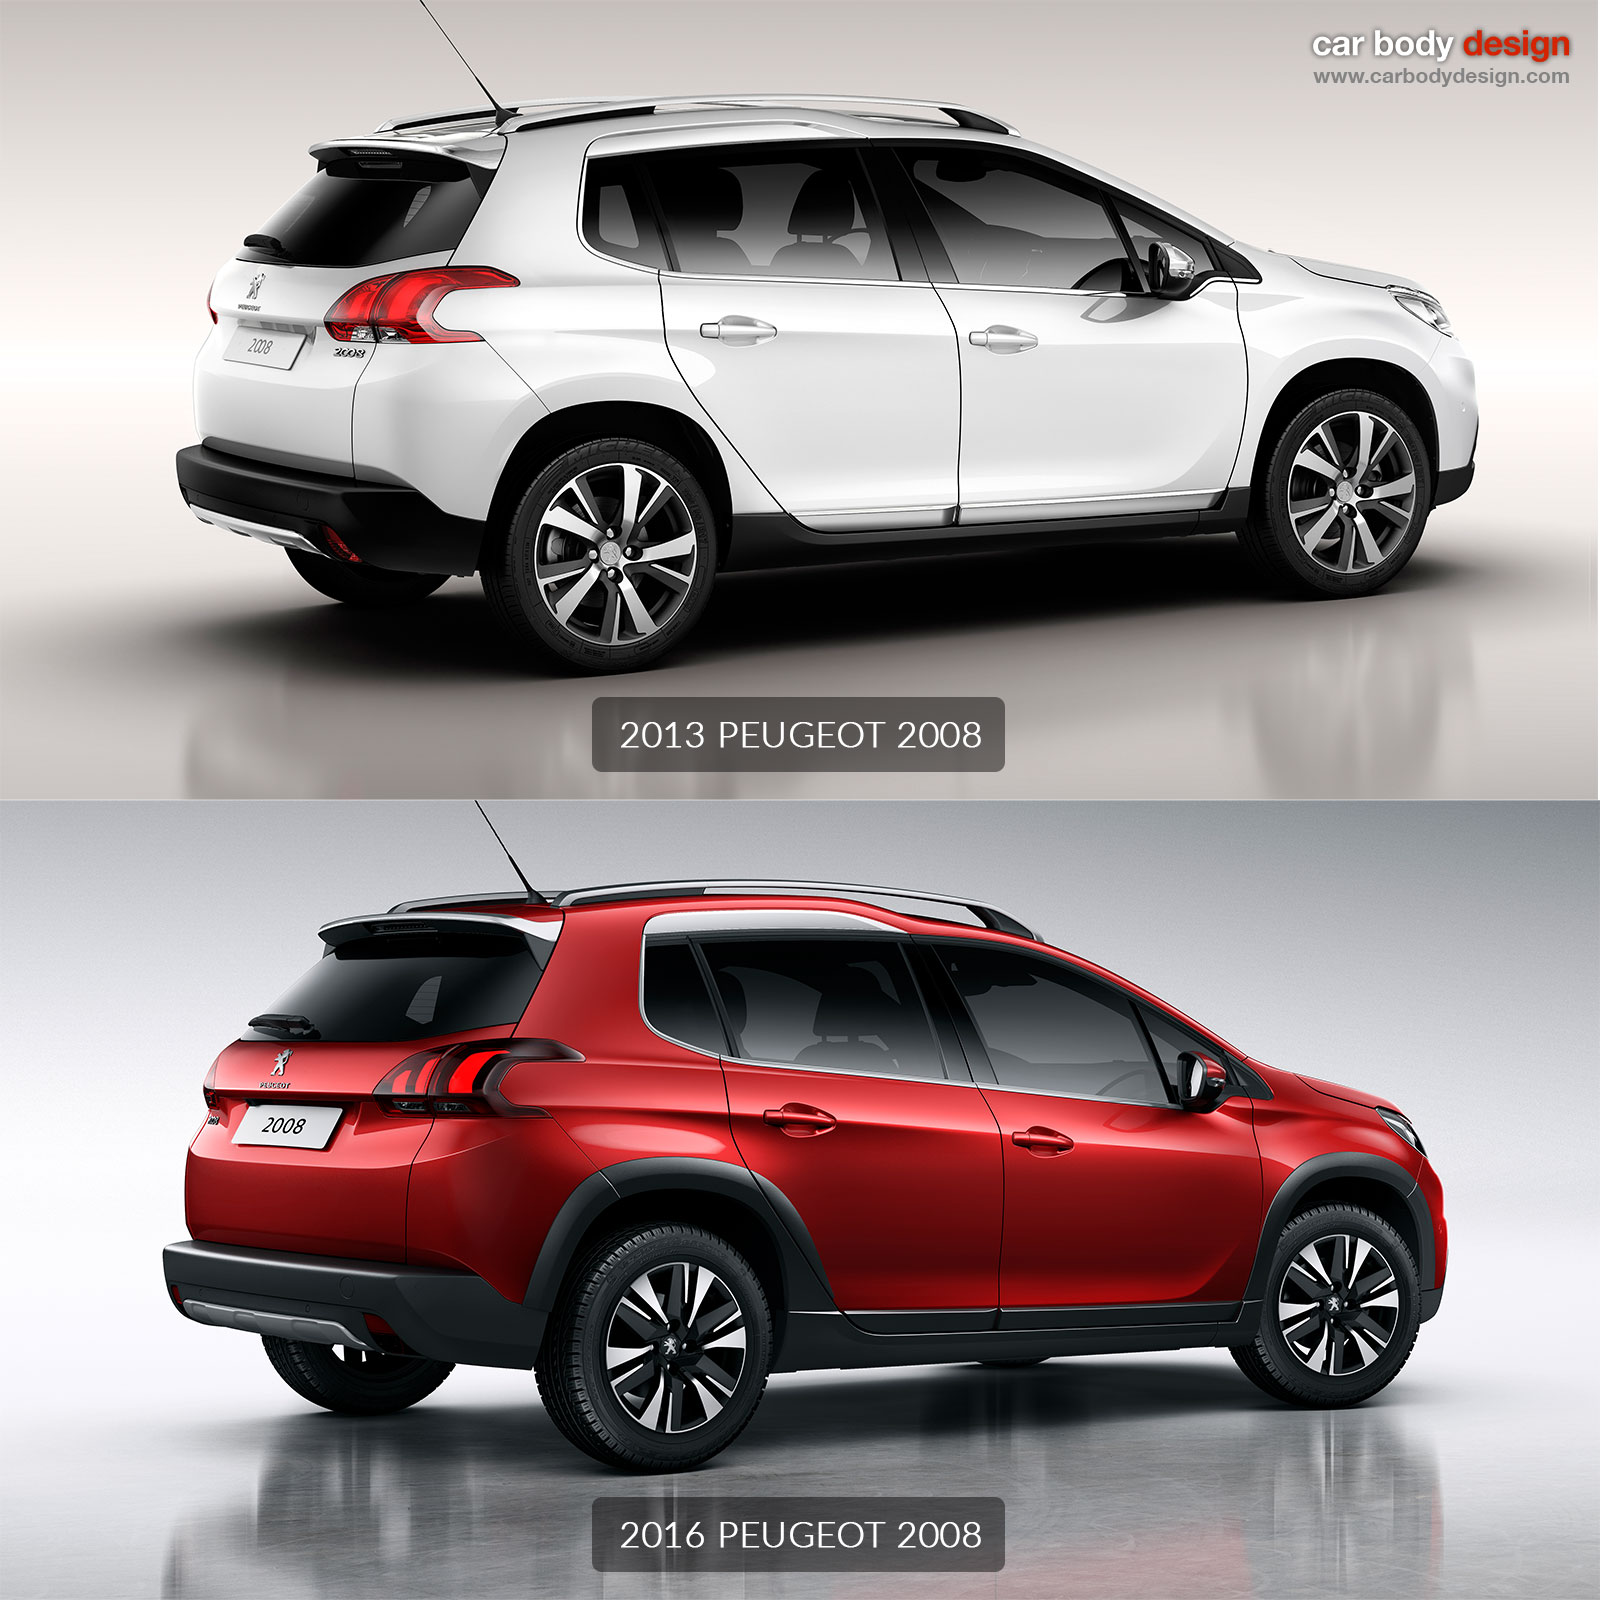 2013 Peugeot 2008 Vs 2016 Peugeot 2008 Design Comparison